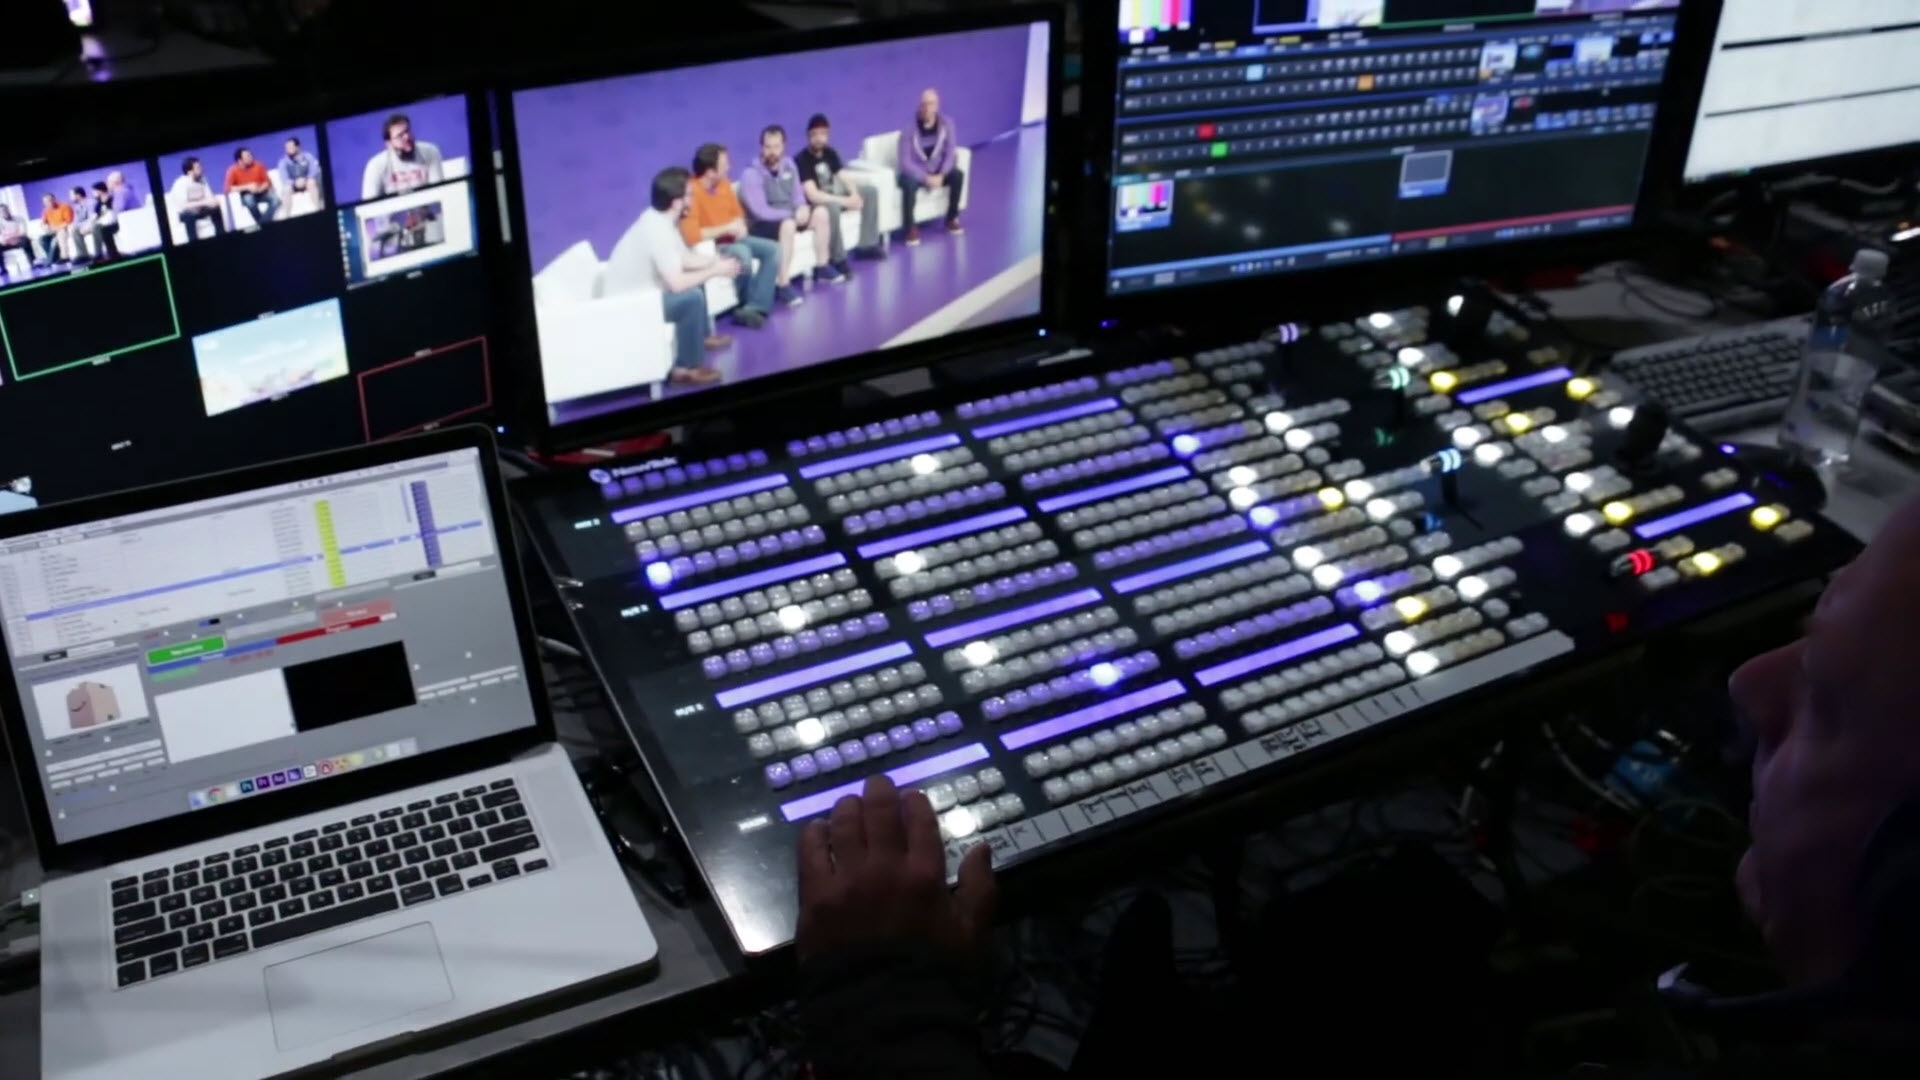 NewTek IP Series 4-stripe control surface at work.